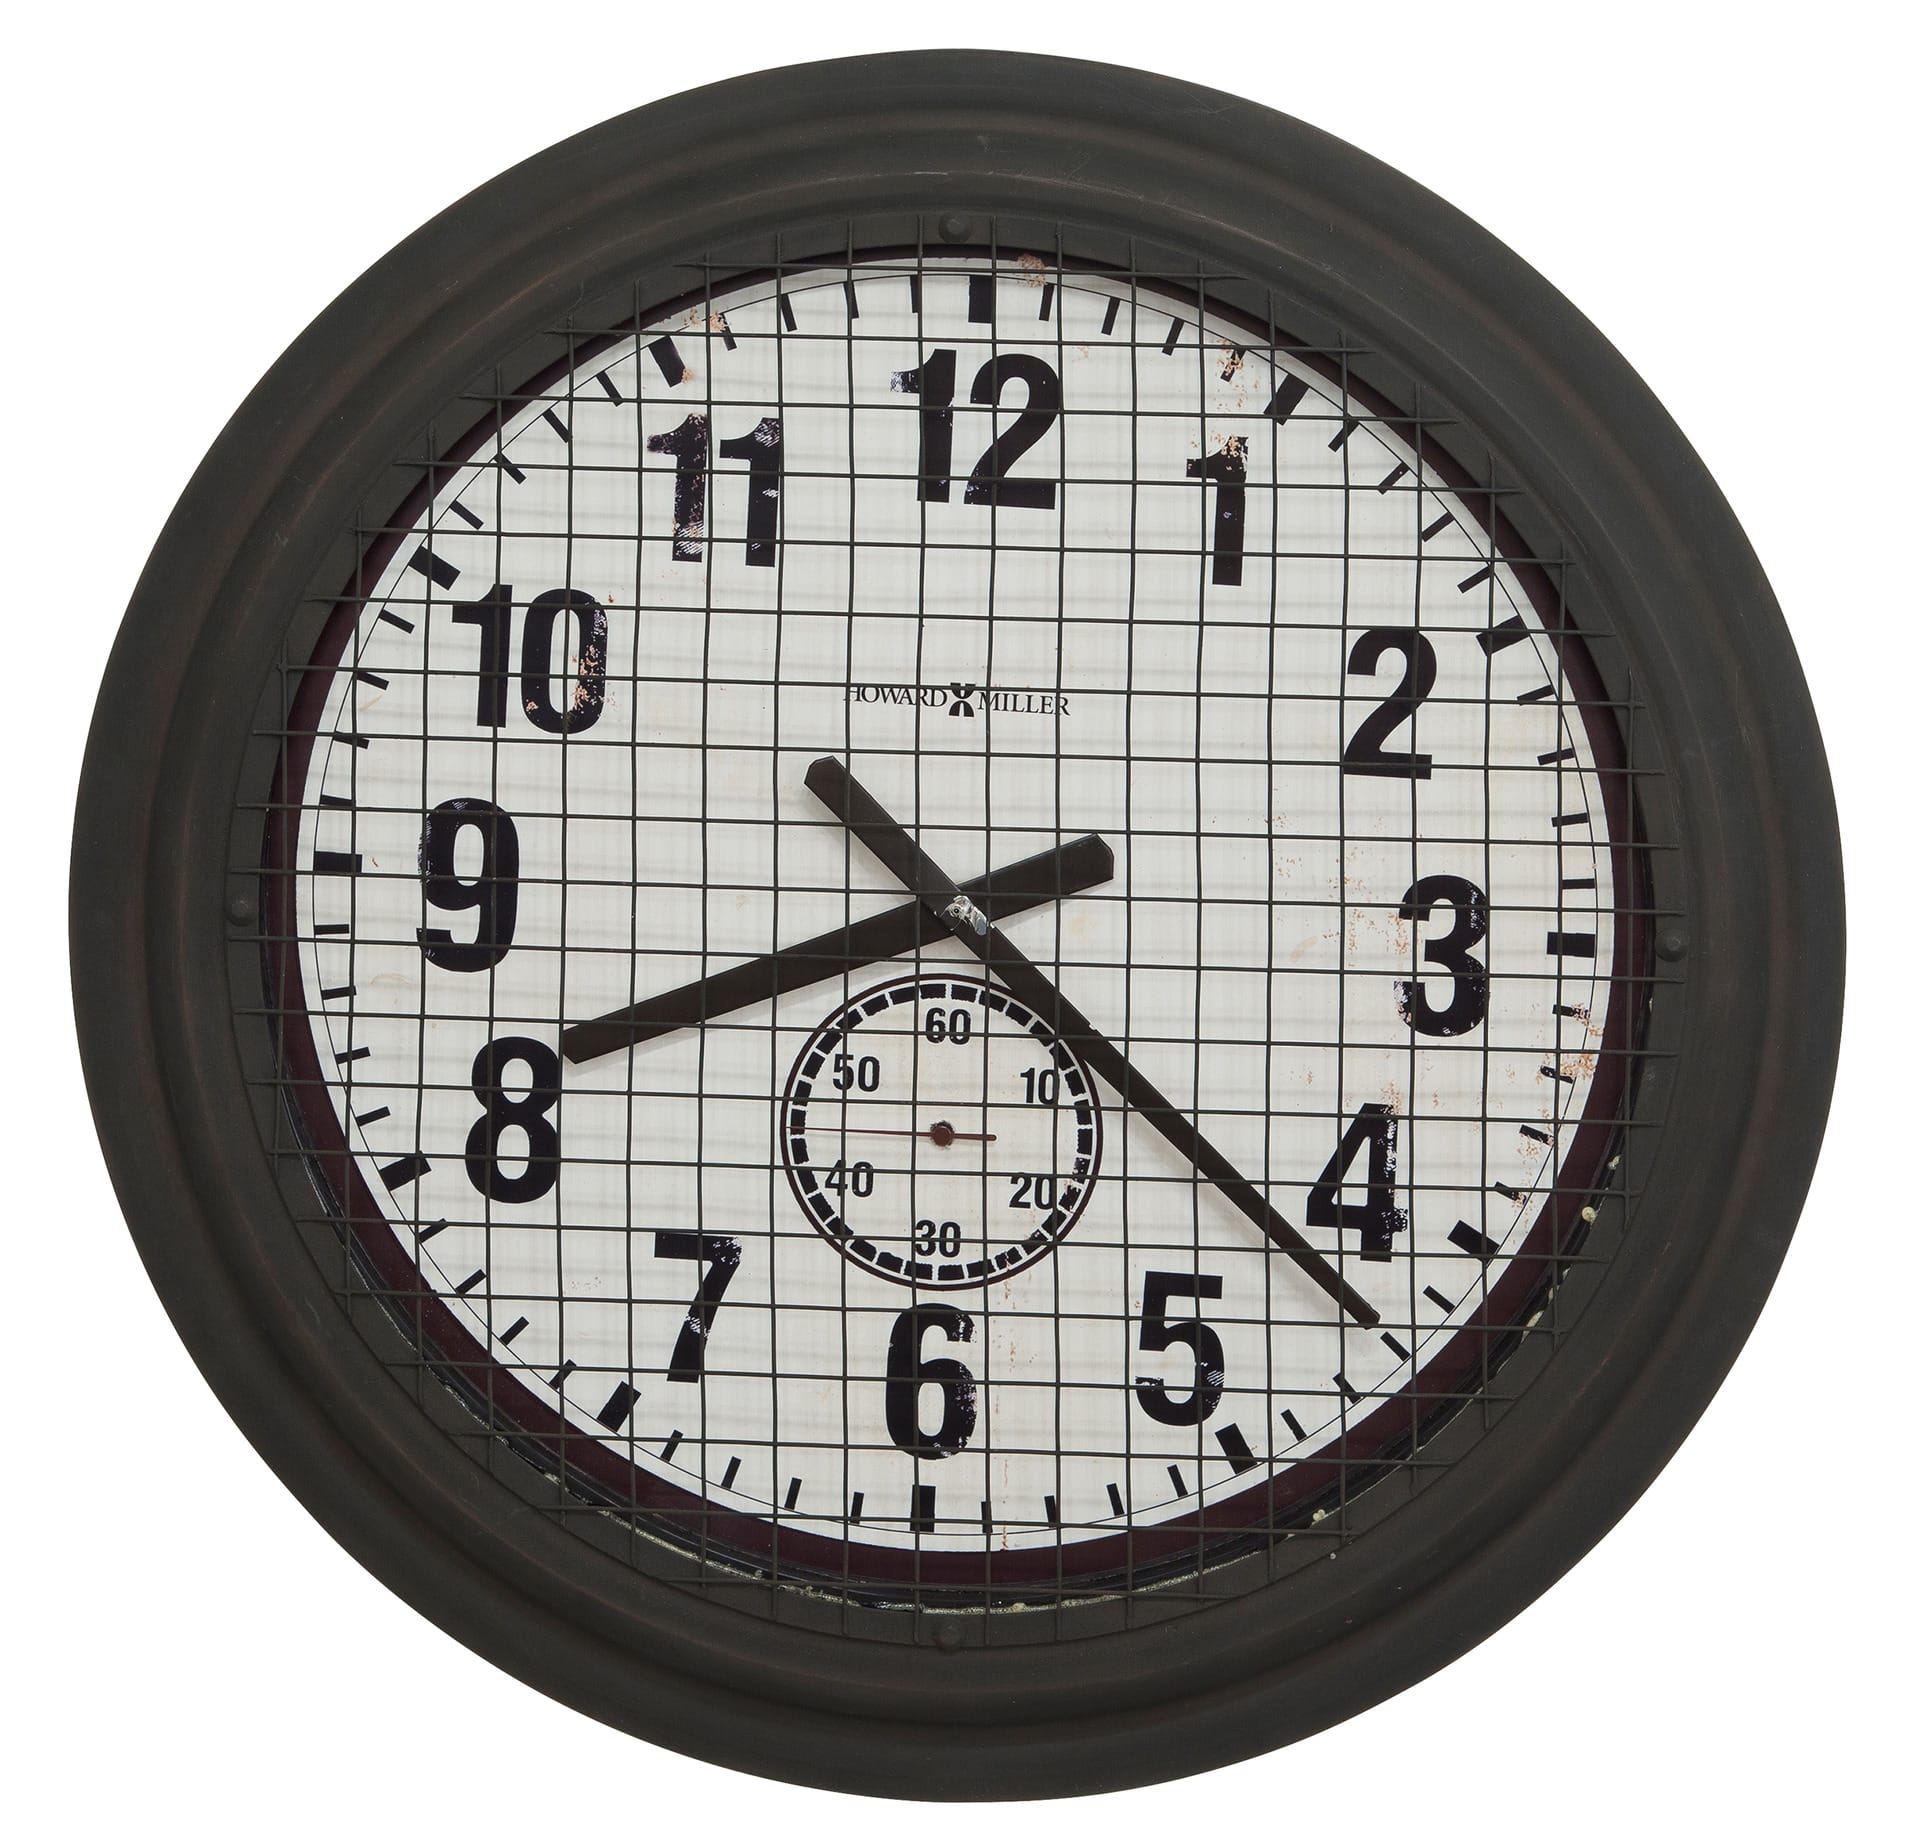 625 625 Grid Iron Works Wall Clock By Howard Miller